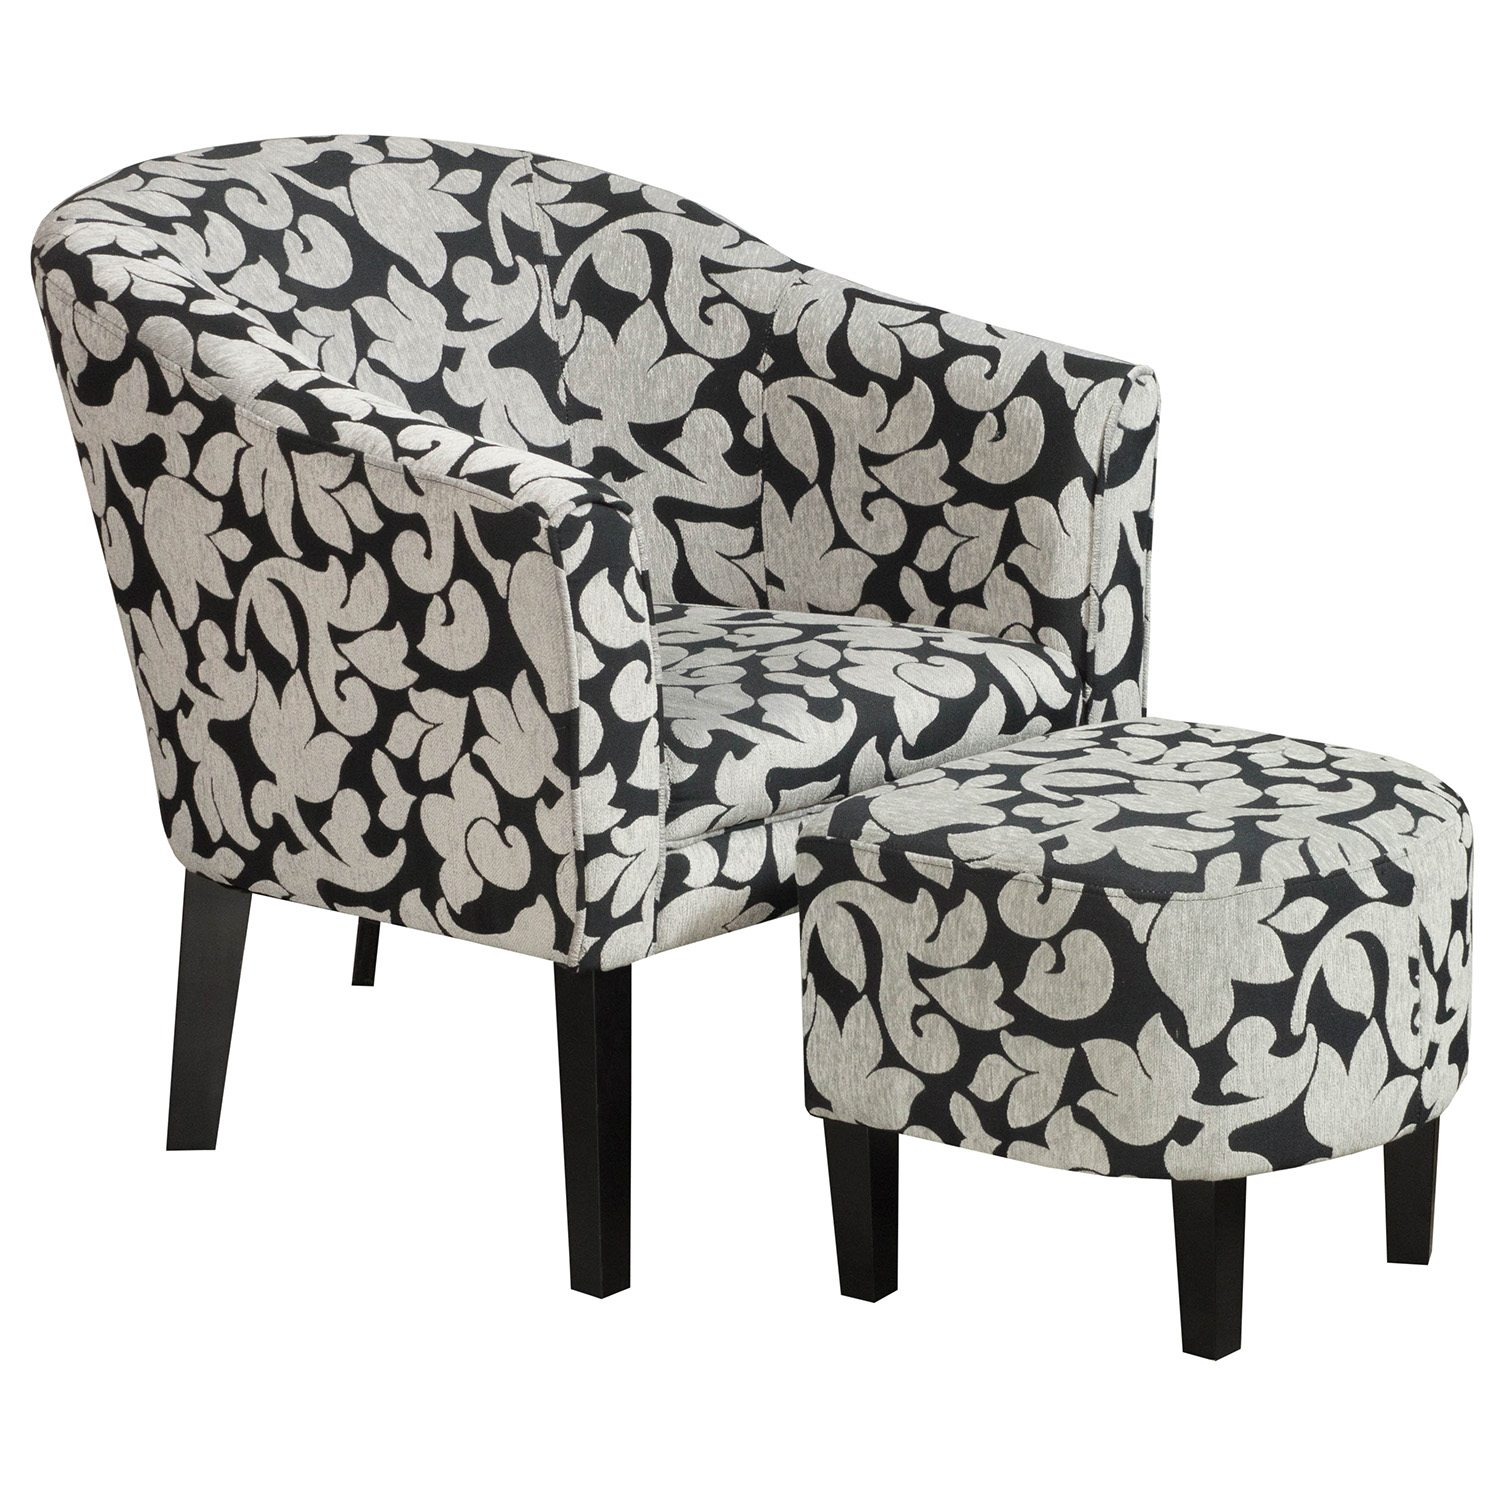 Lounge Chair With Ottoman Used Lounge Chair W Ottoman Black Pattern National